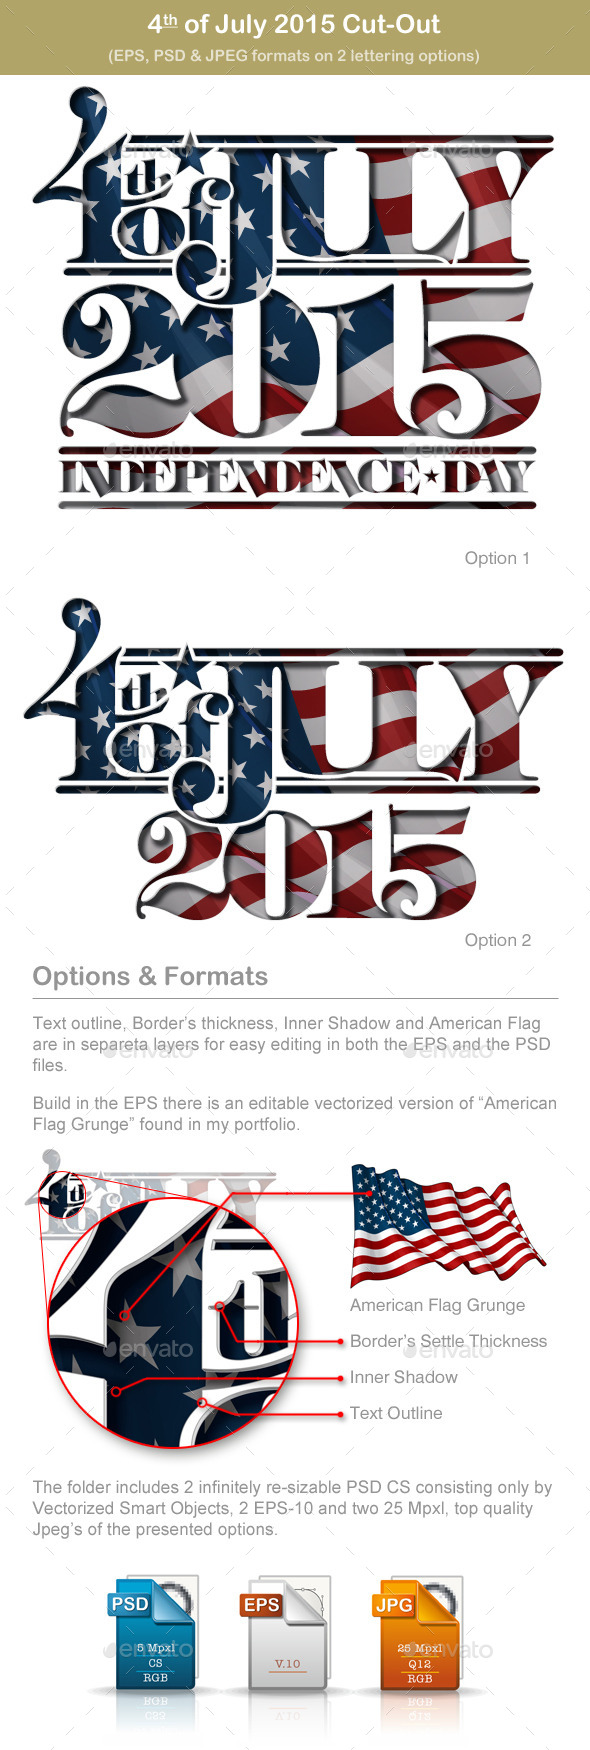 GraphicRiver 4th of July Cut-Out 2015 11478854